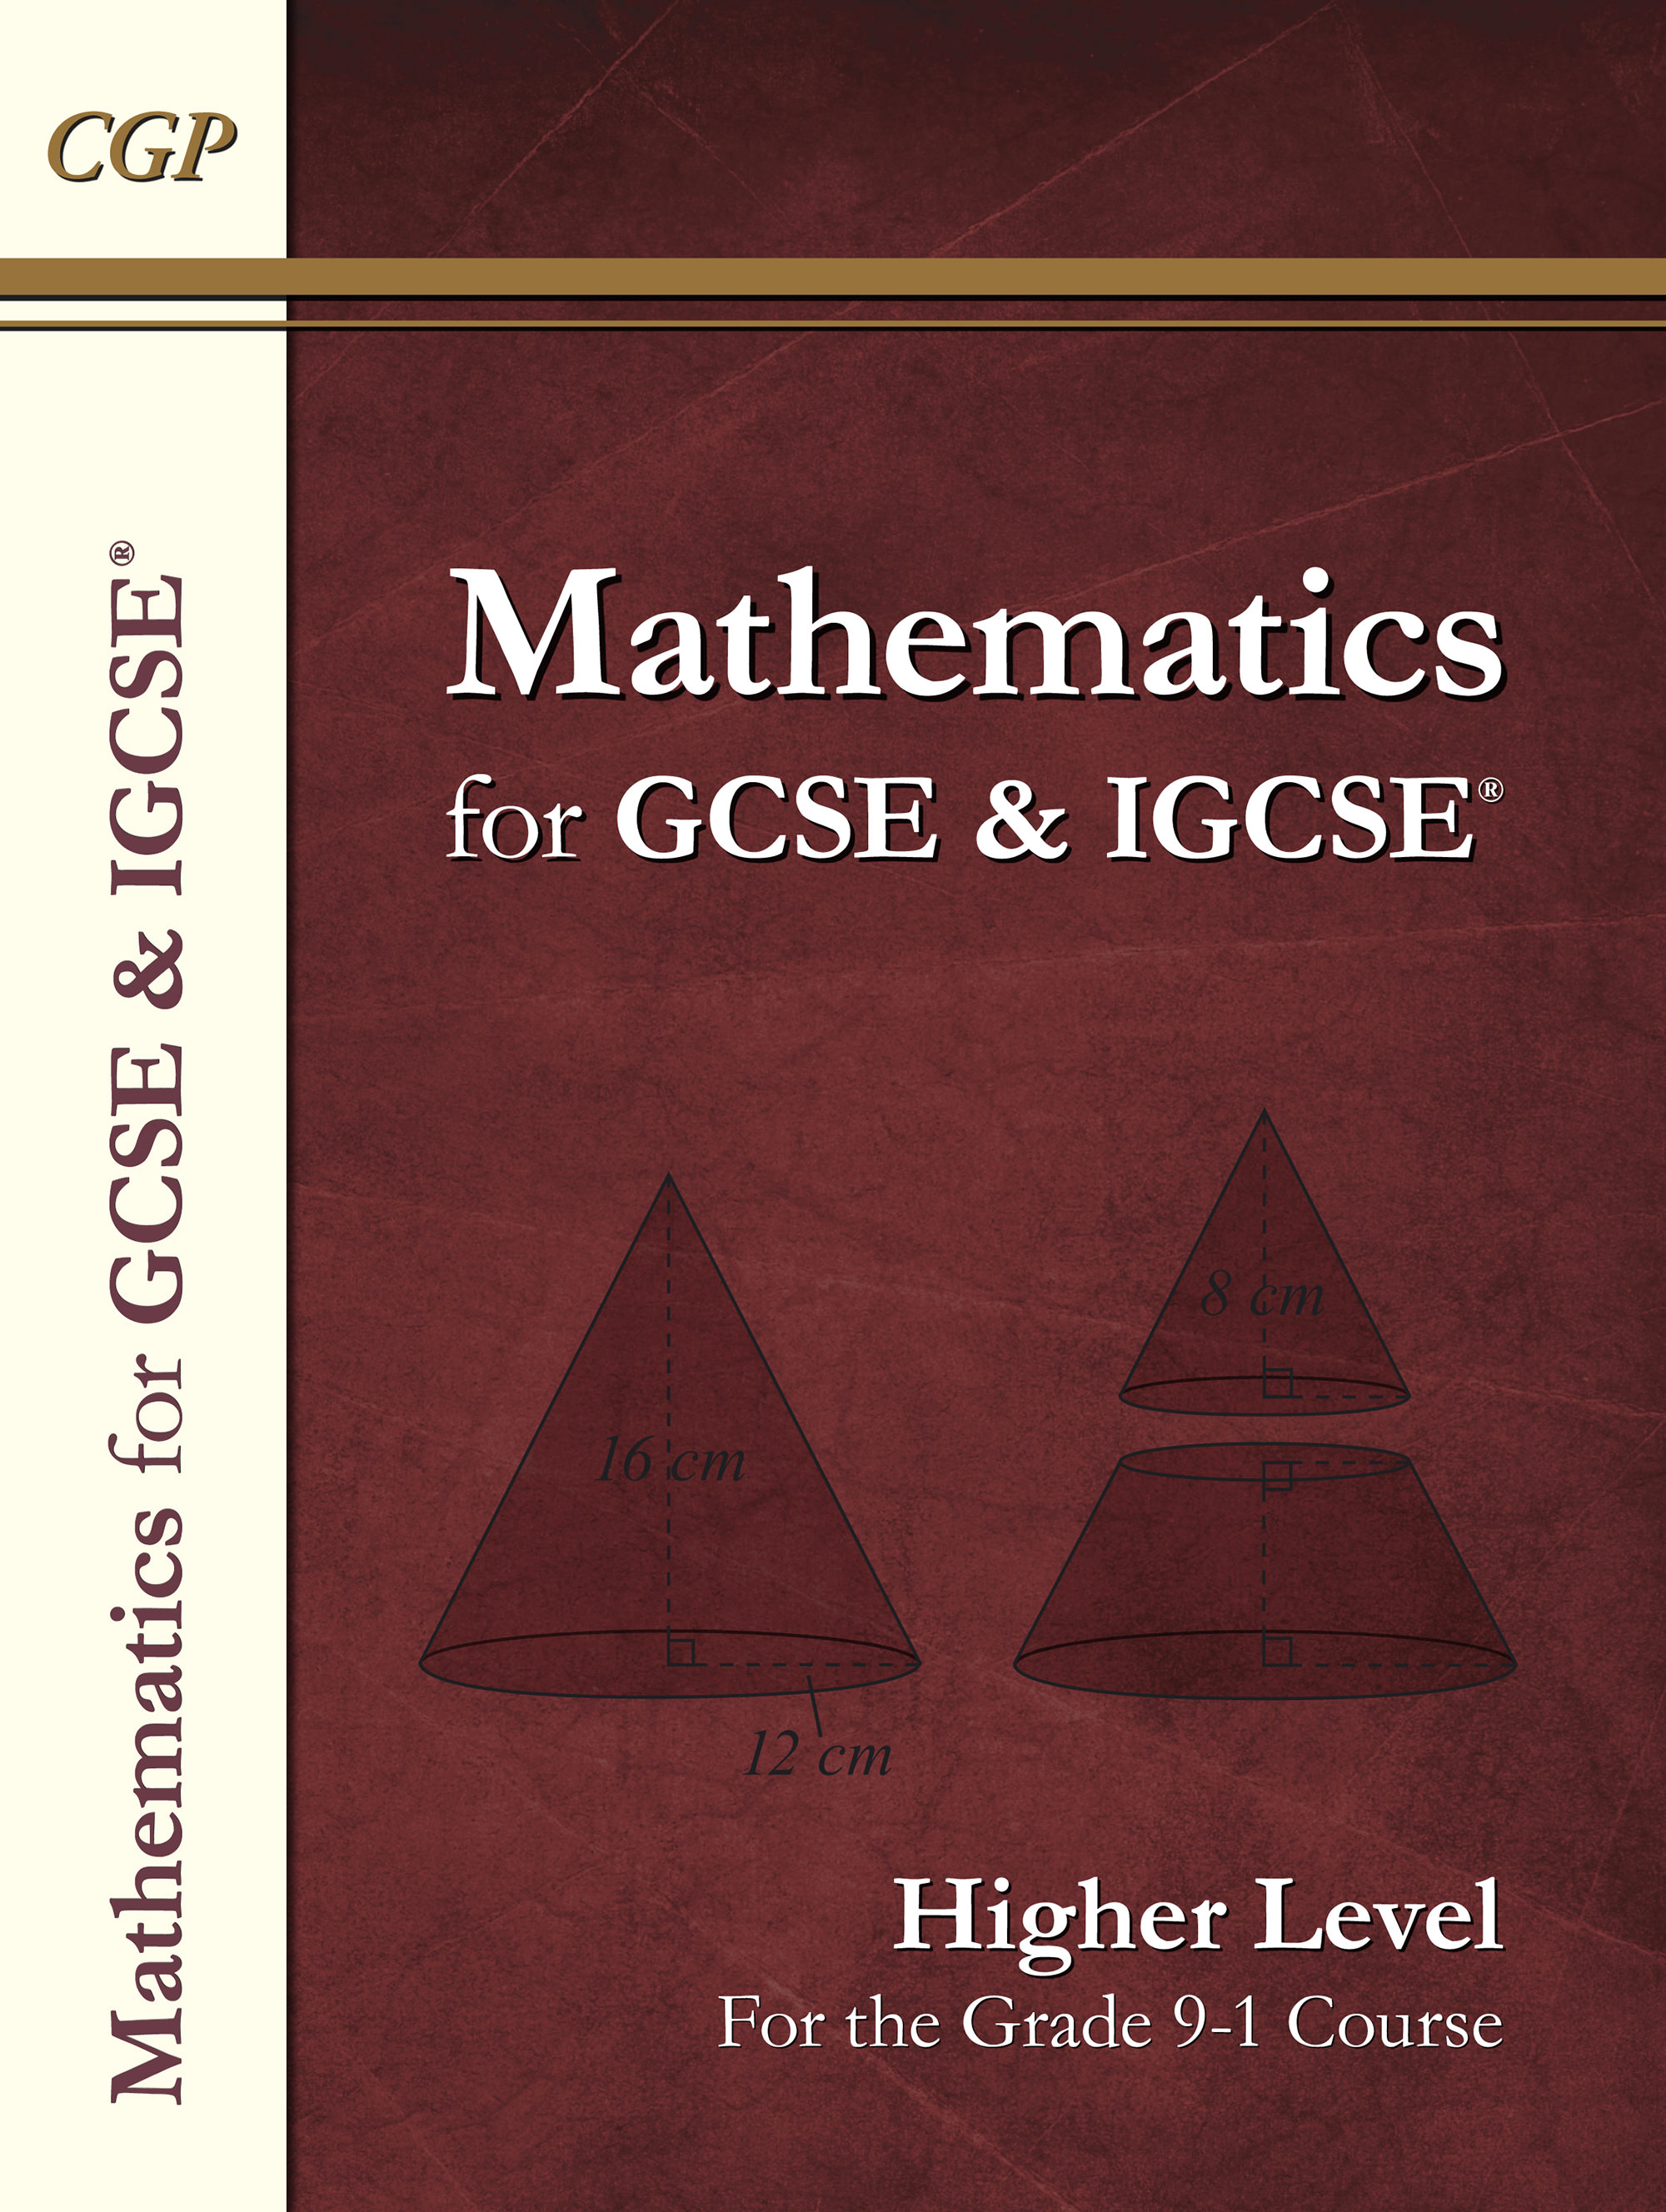 Maths for GCSE and IGCSE® Textbook, Higher (for the Grade 9-1 Course)